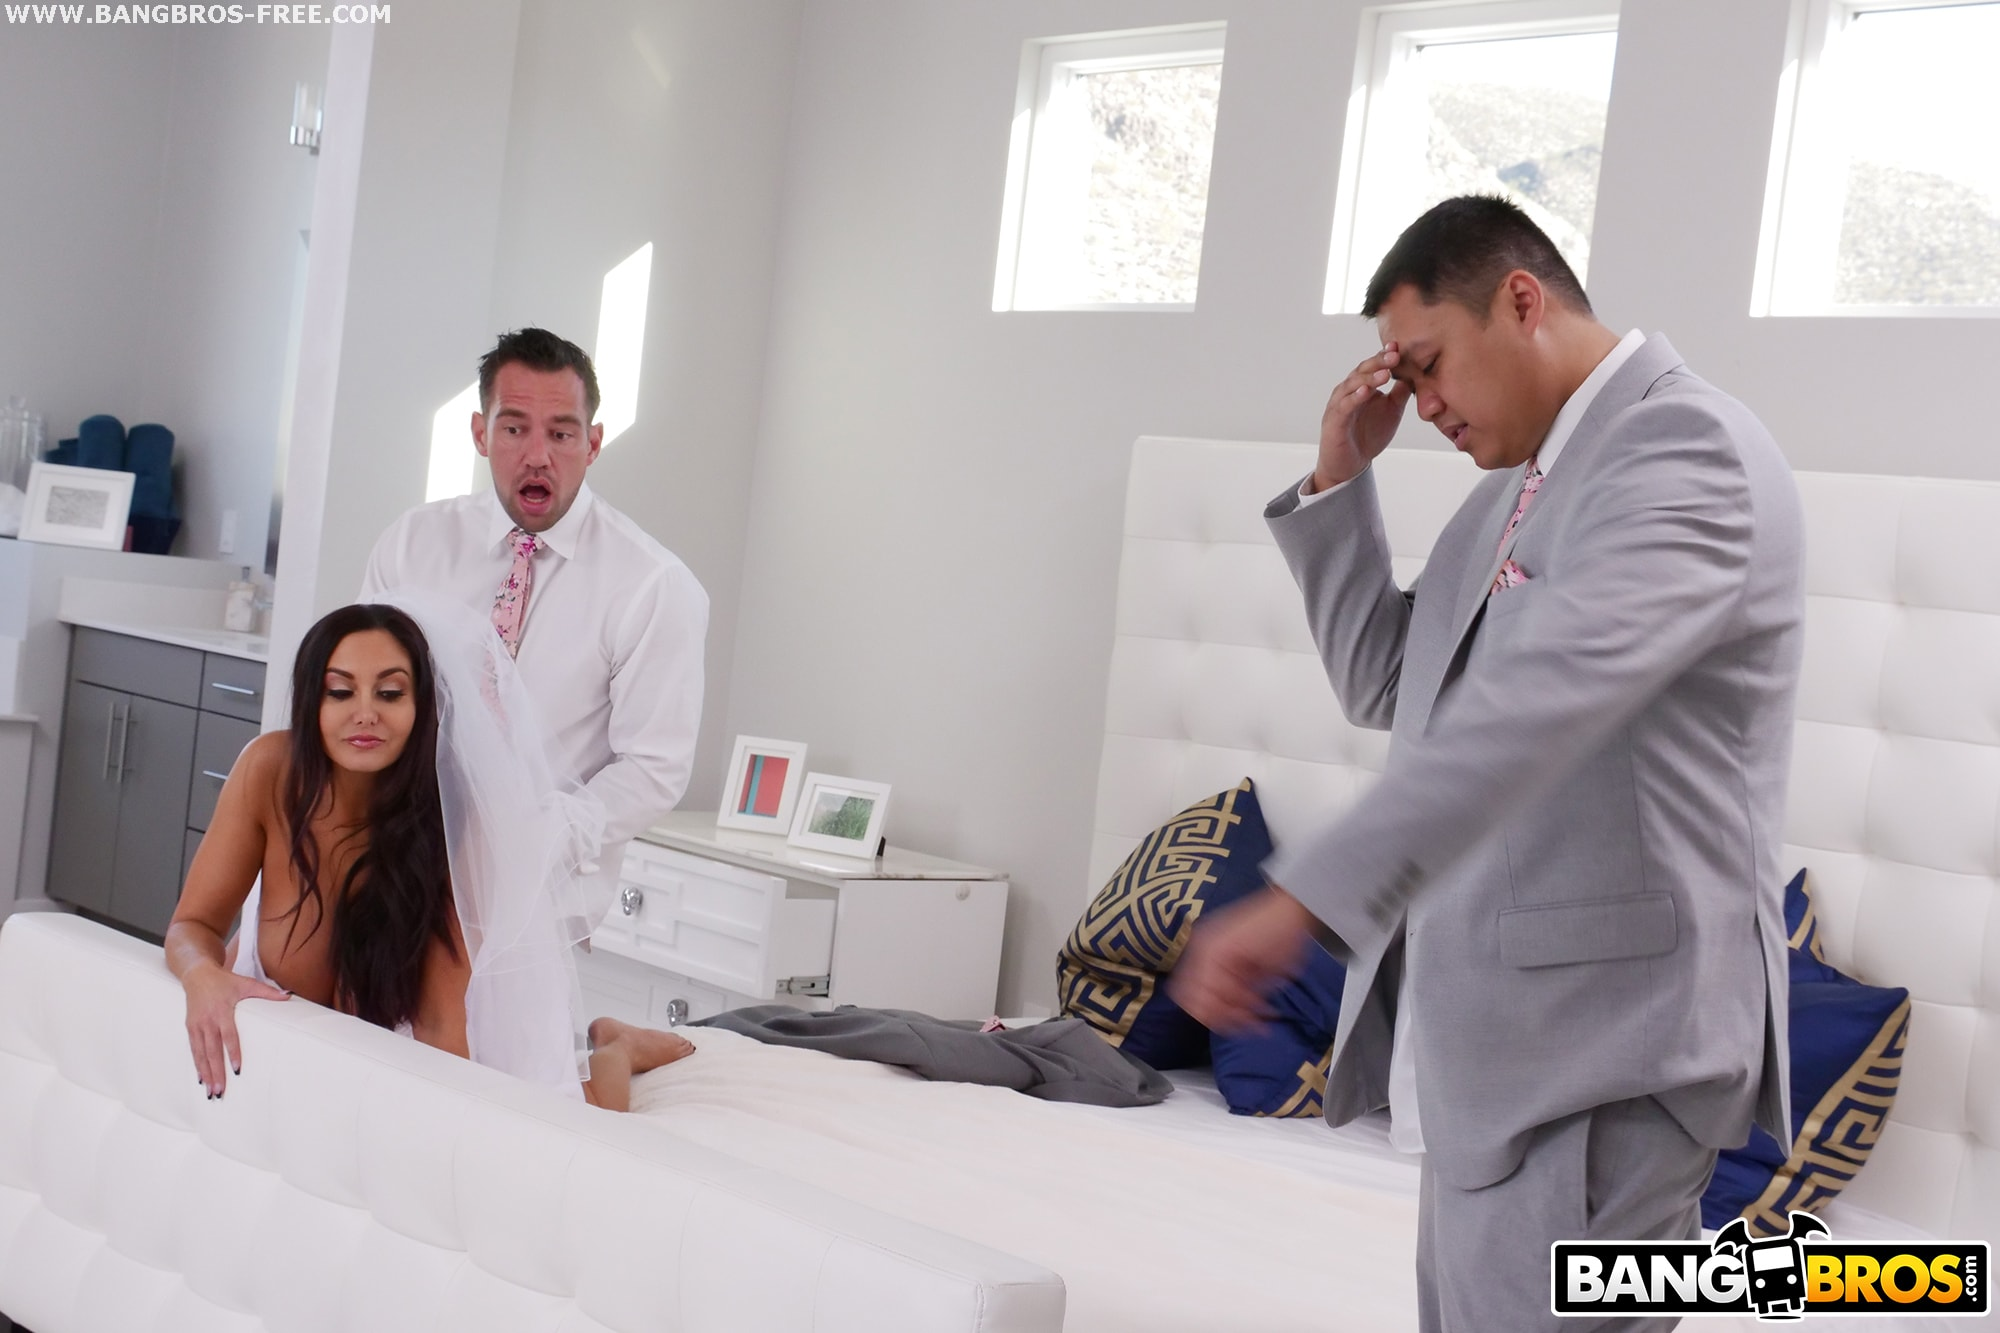 Bangbros 'Ava Addams Fucks the Best Man' starring Ava Addams (photo 72)